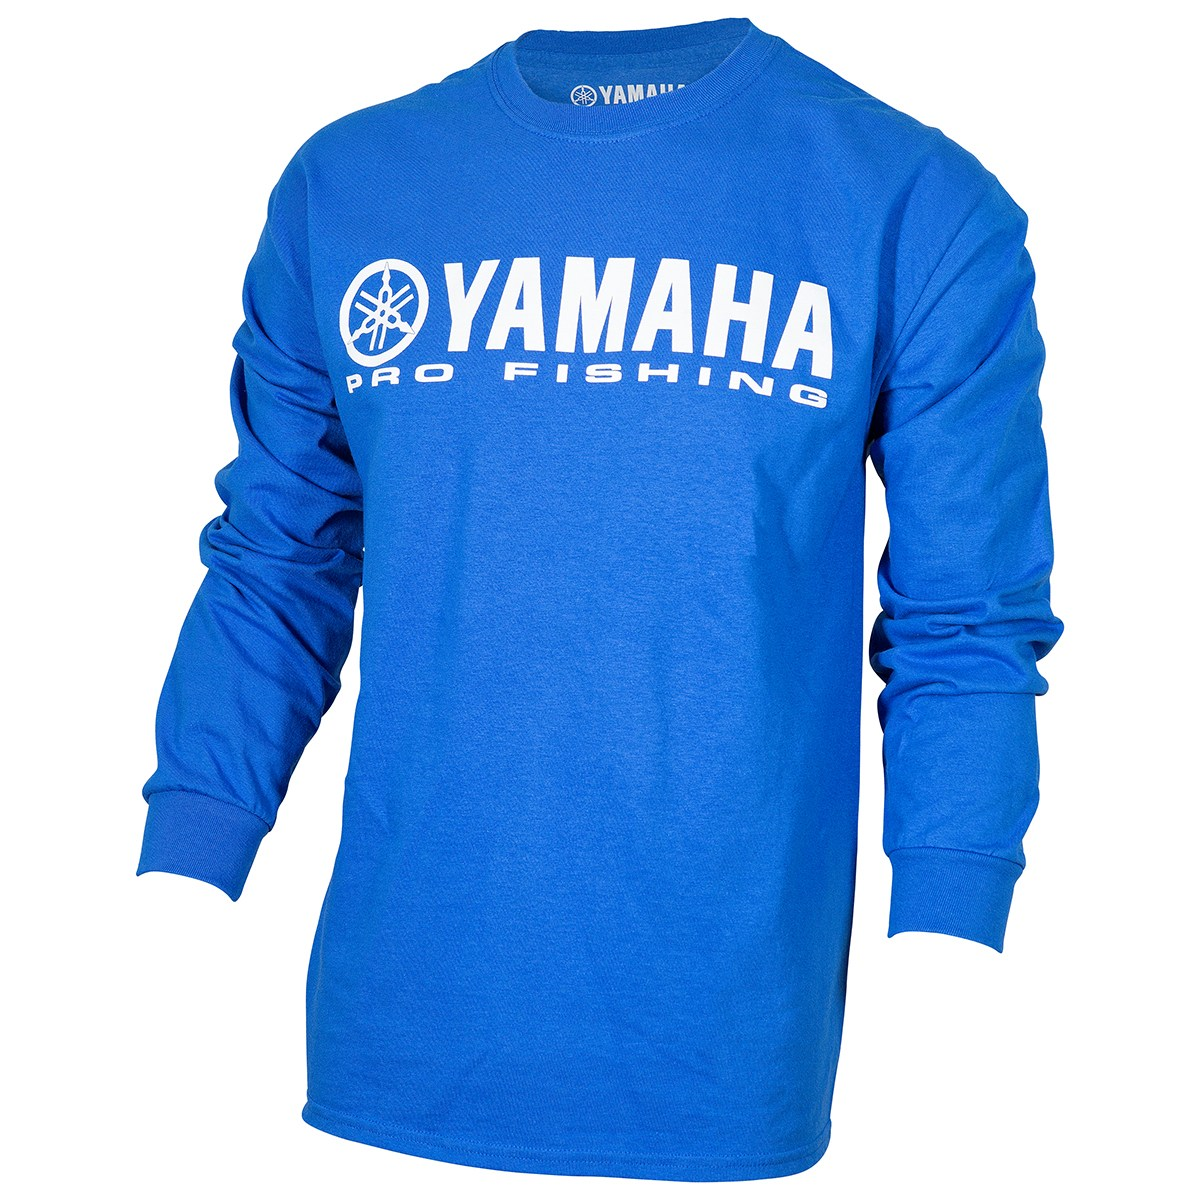 Yamaha - OEM Pro Fishing 100% Cotton Long Sleeve Blue T-Shirt